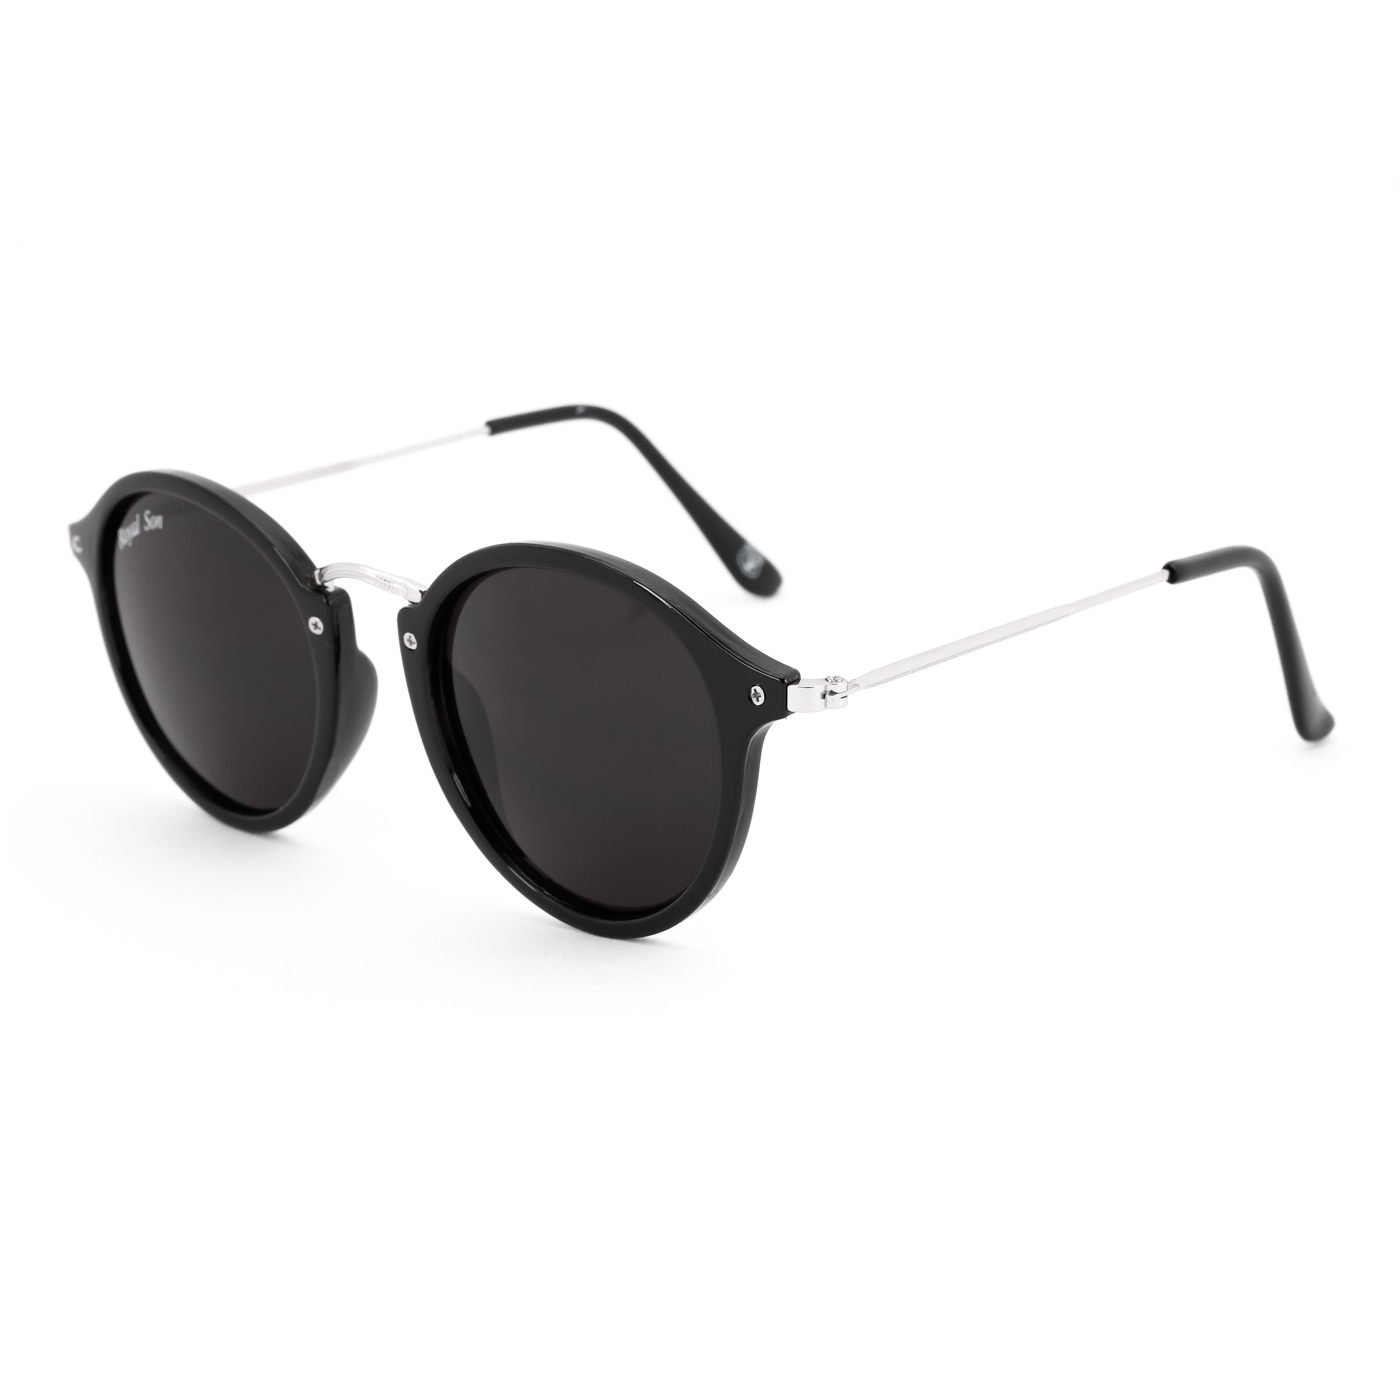 2943b4200e5 ... Aviator Men Source · Royal Son UV Protected Round Sunglasses For Men  and Women RS003RD